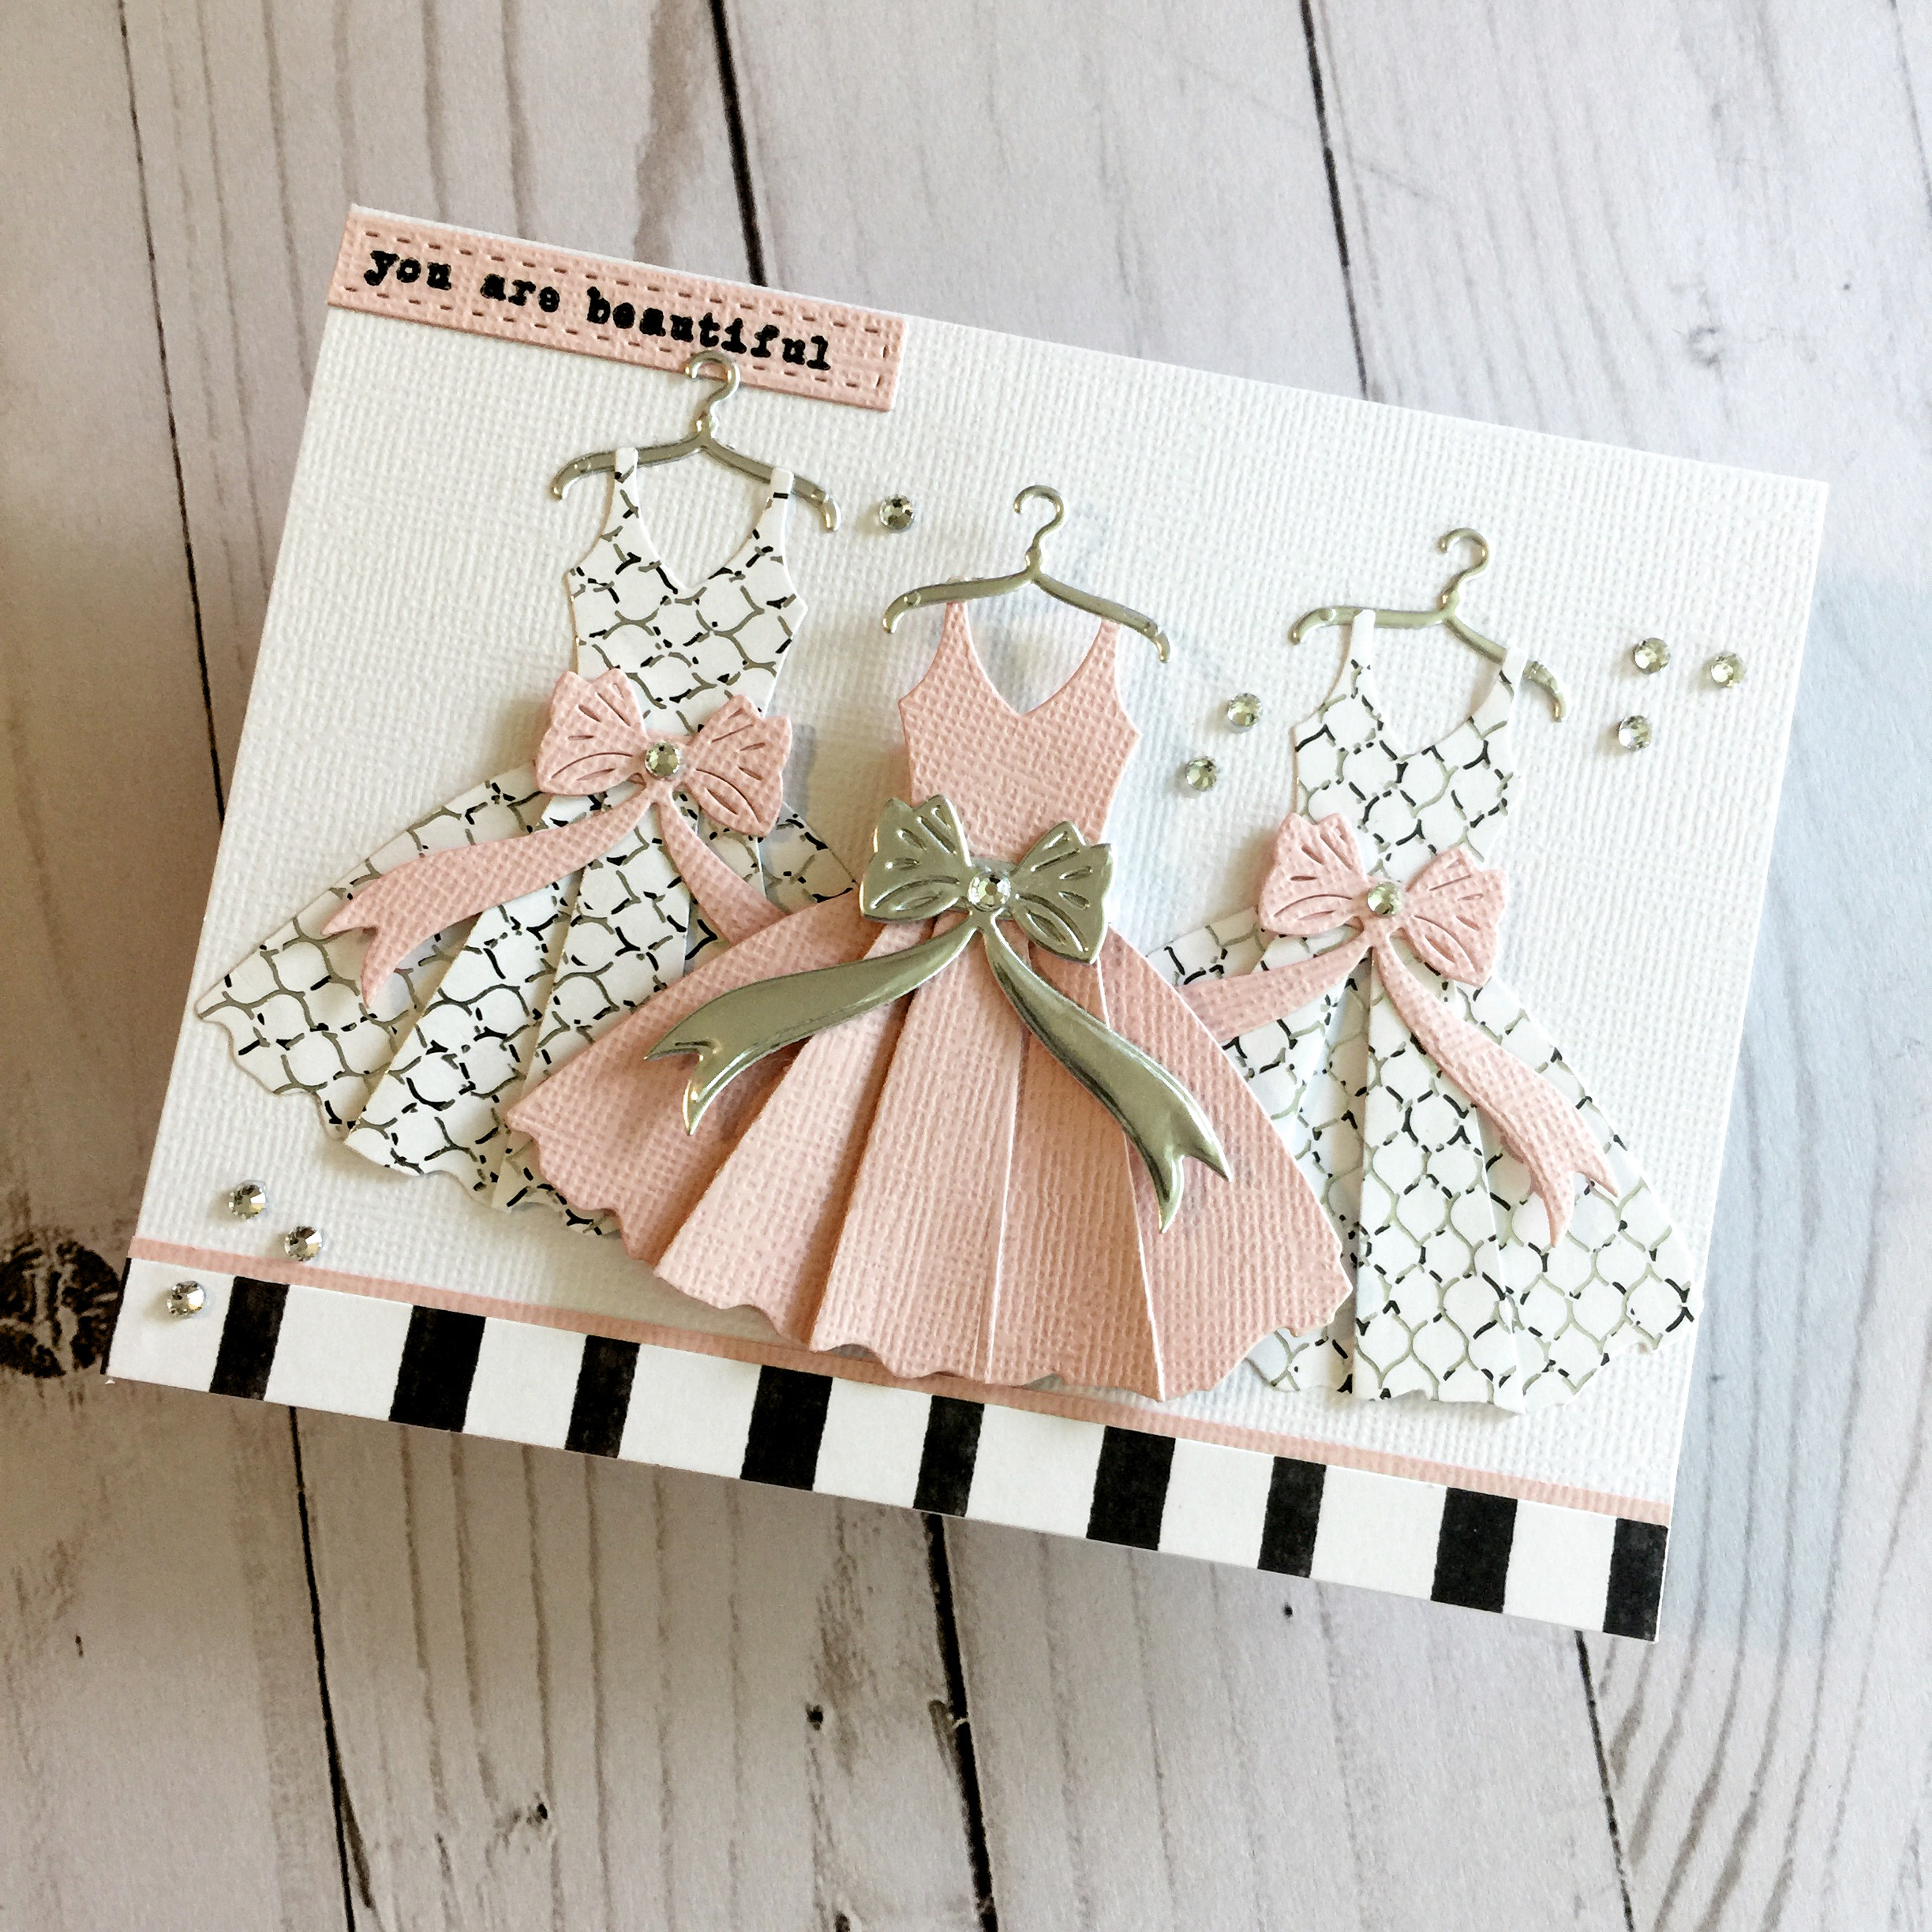 Spellbinders - Night Out - May 2019 Card Club Kit